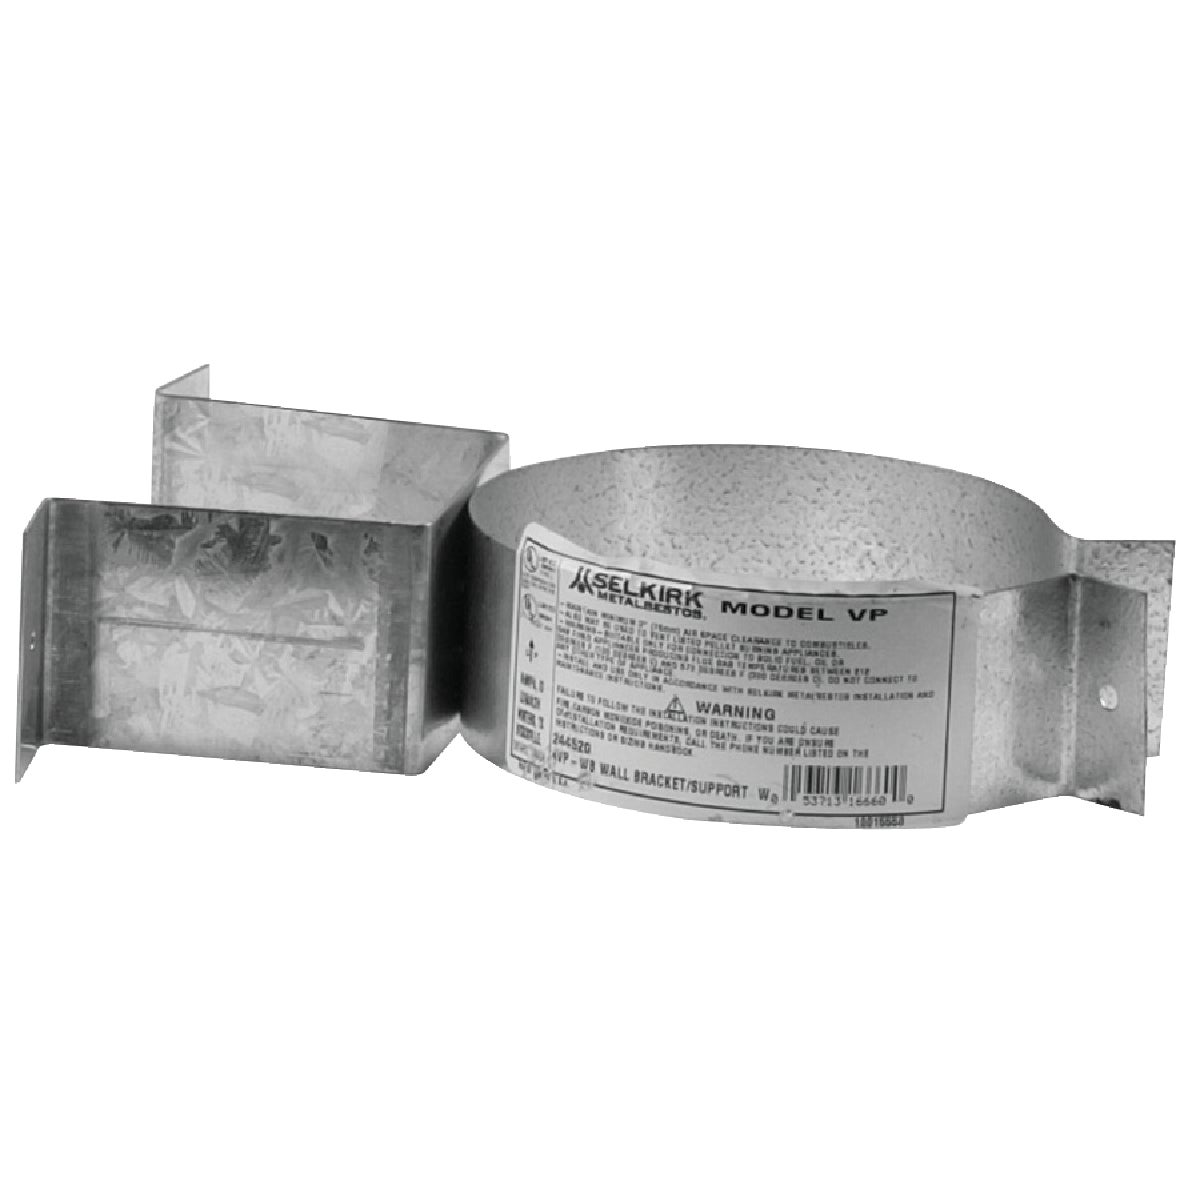 PELLET PIPE WALL BRACKET